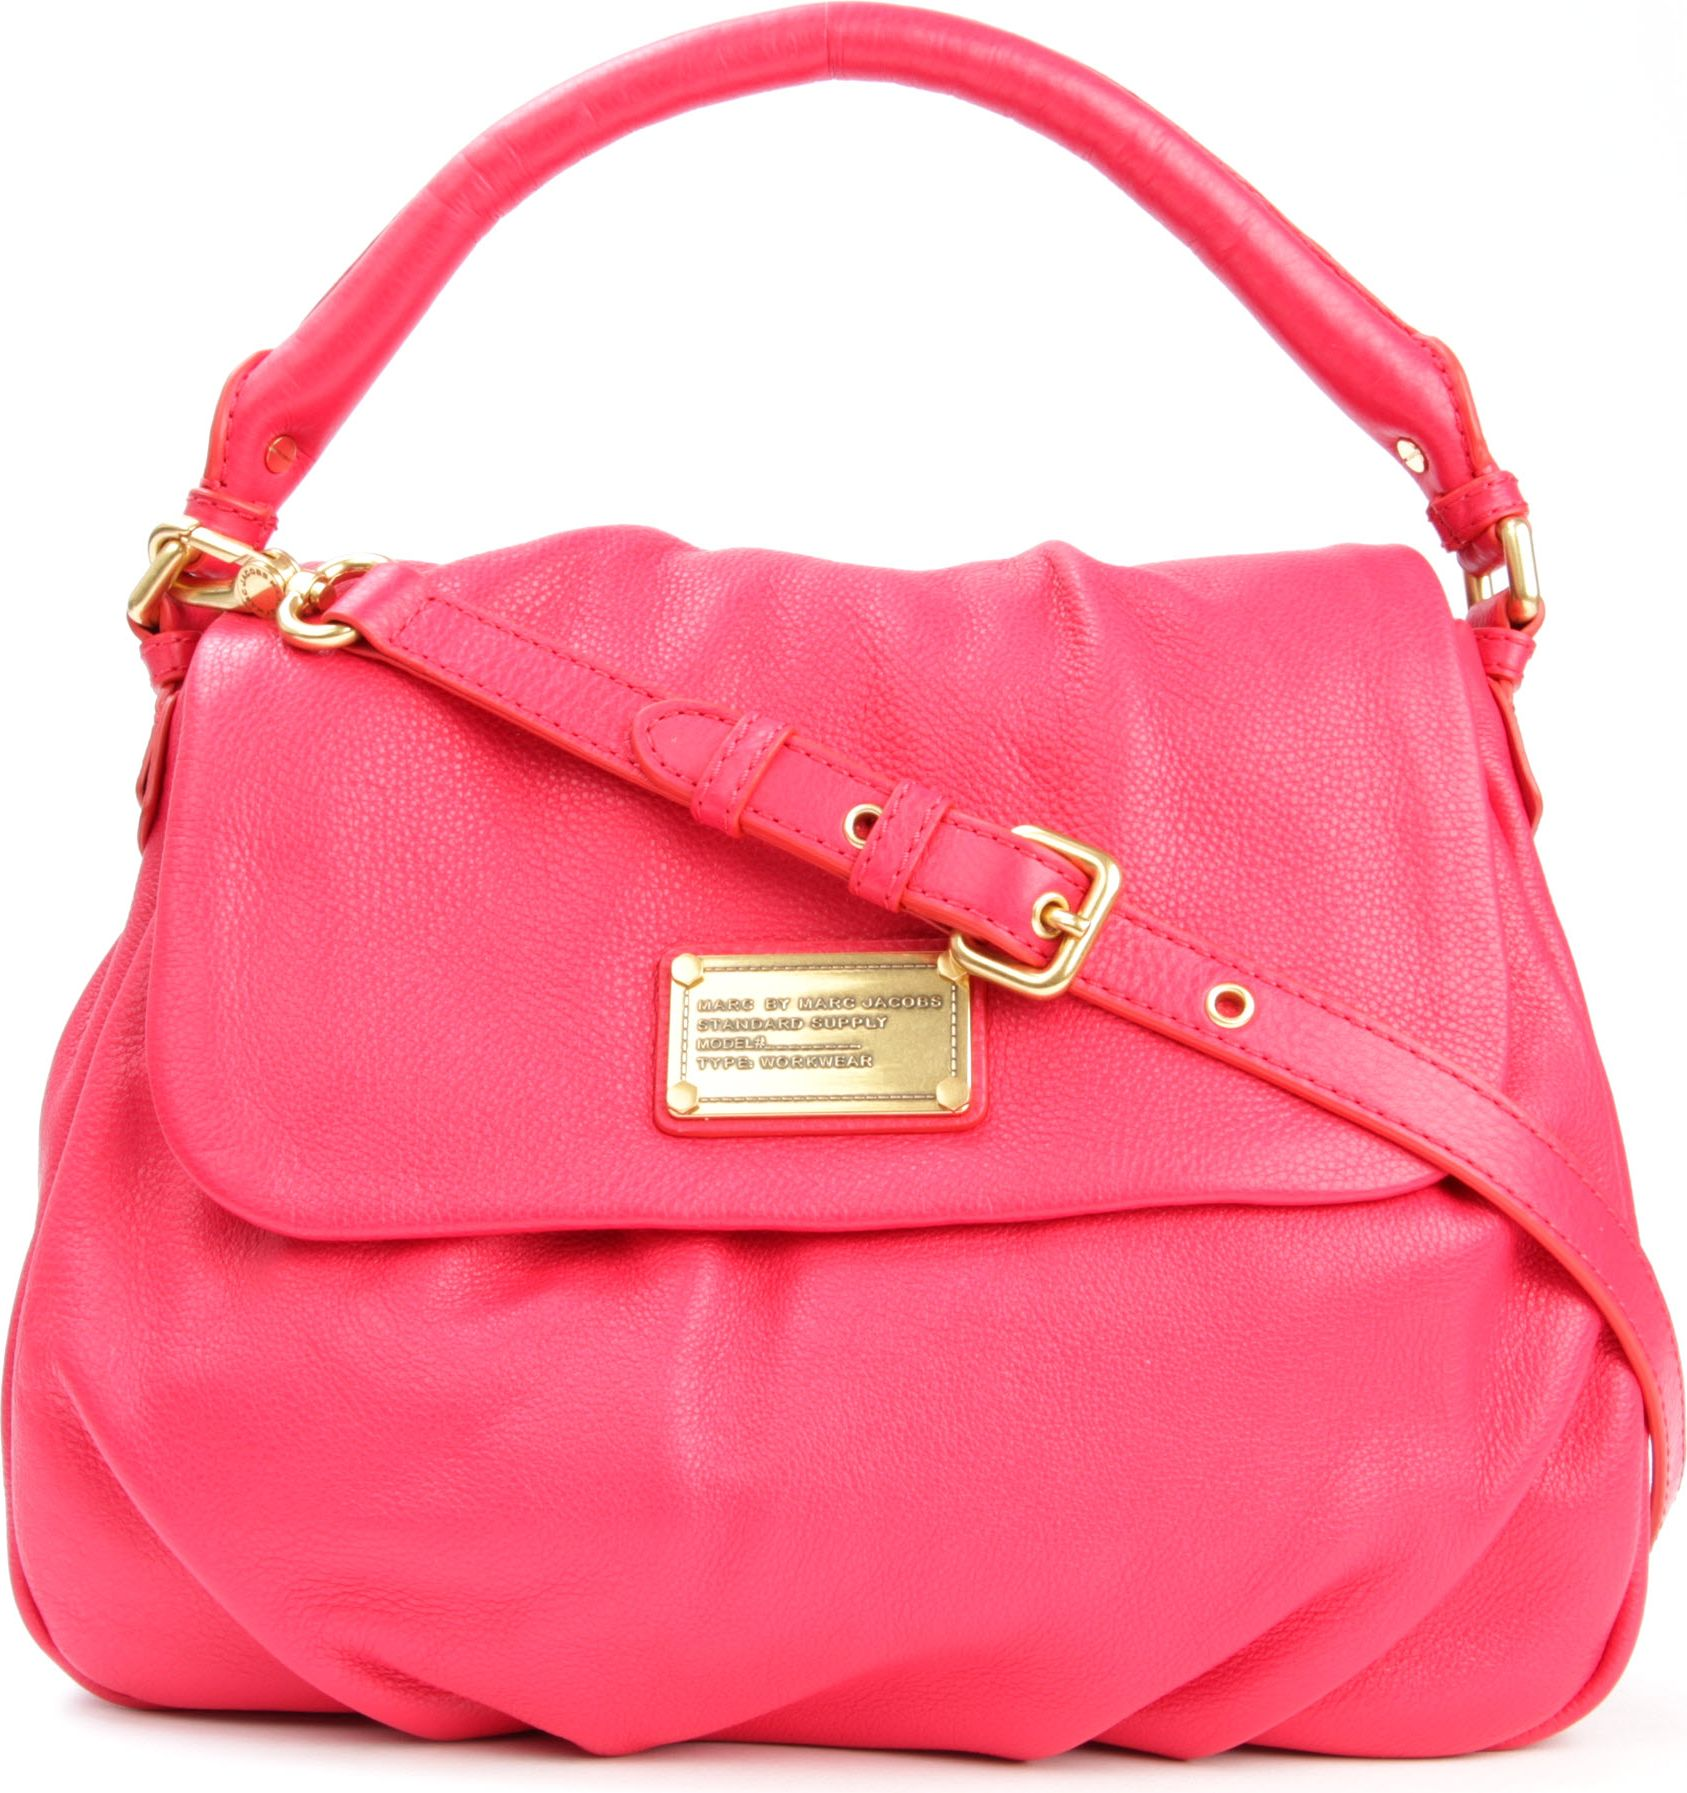 Marc By Marc Jacobs Classic Q Lil Ukita Shoulder Bag in Pink - Lyst 8c2edc939915